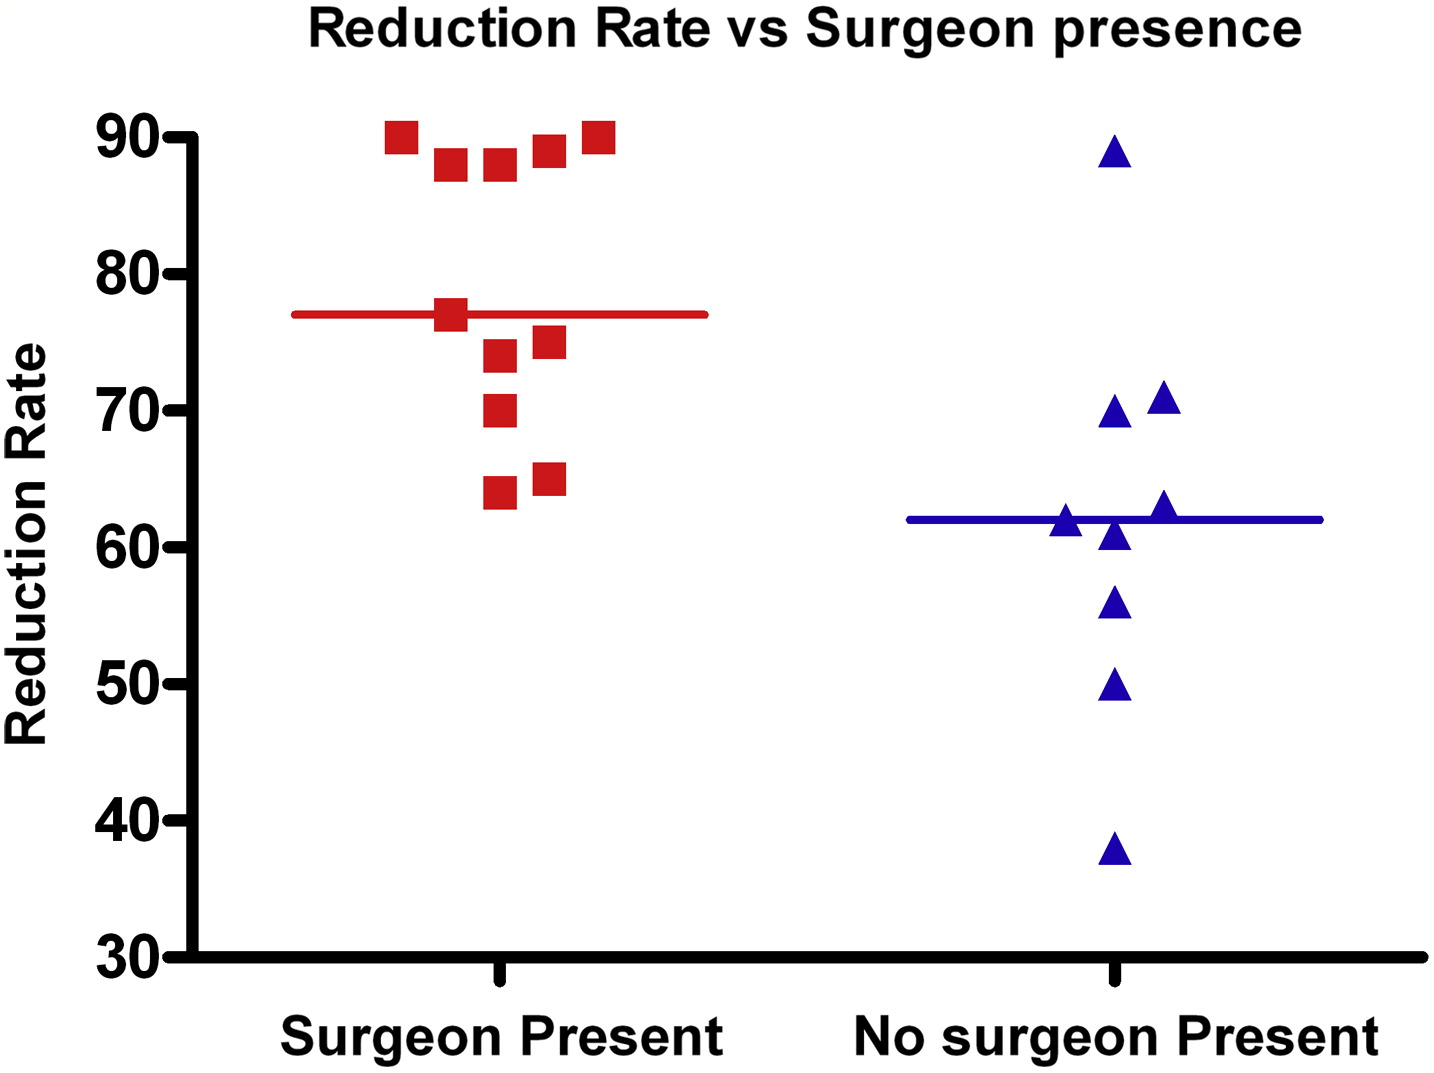 Uk Intussusception Audit A National Survey Of Practice And Audit Of Reduction Rates